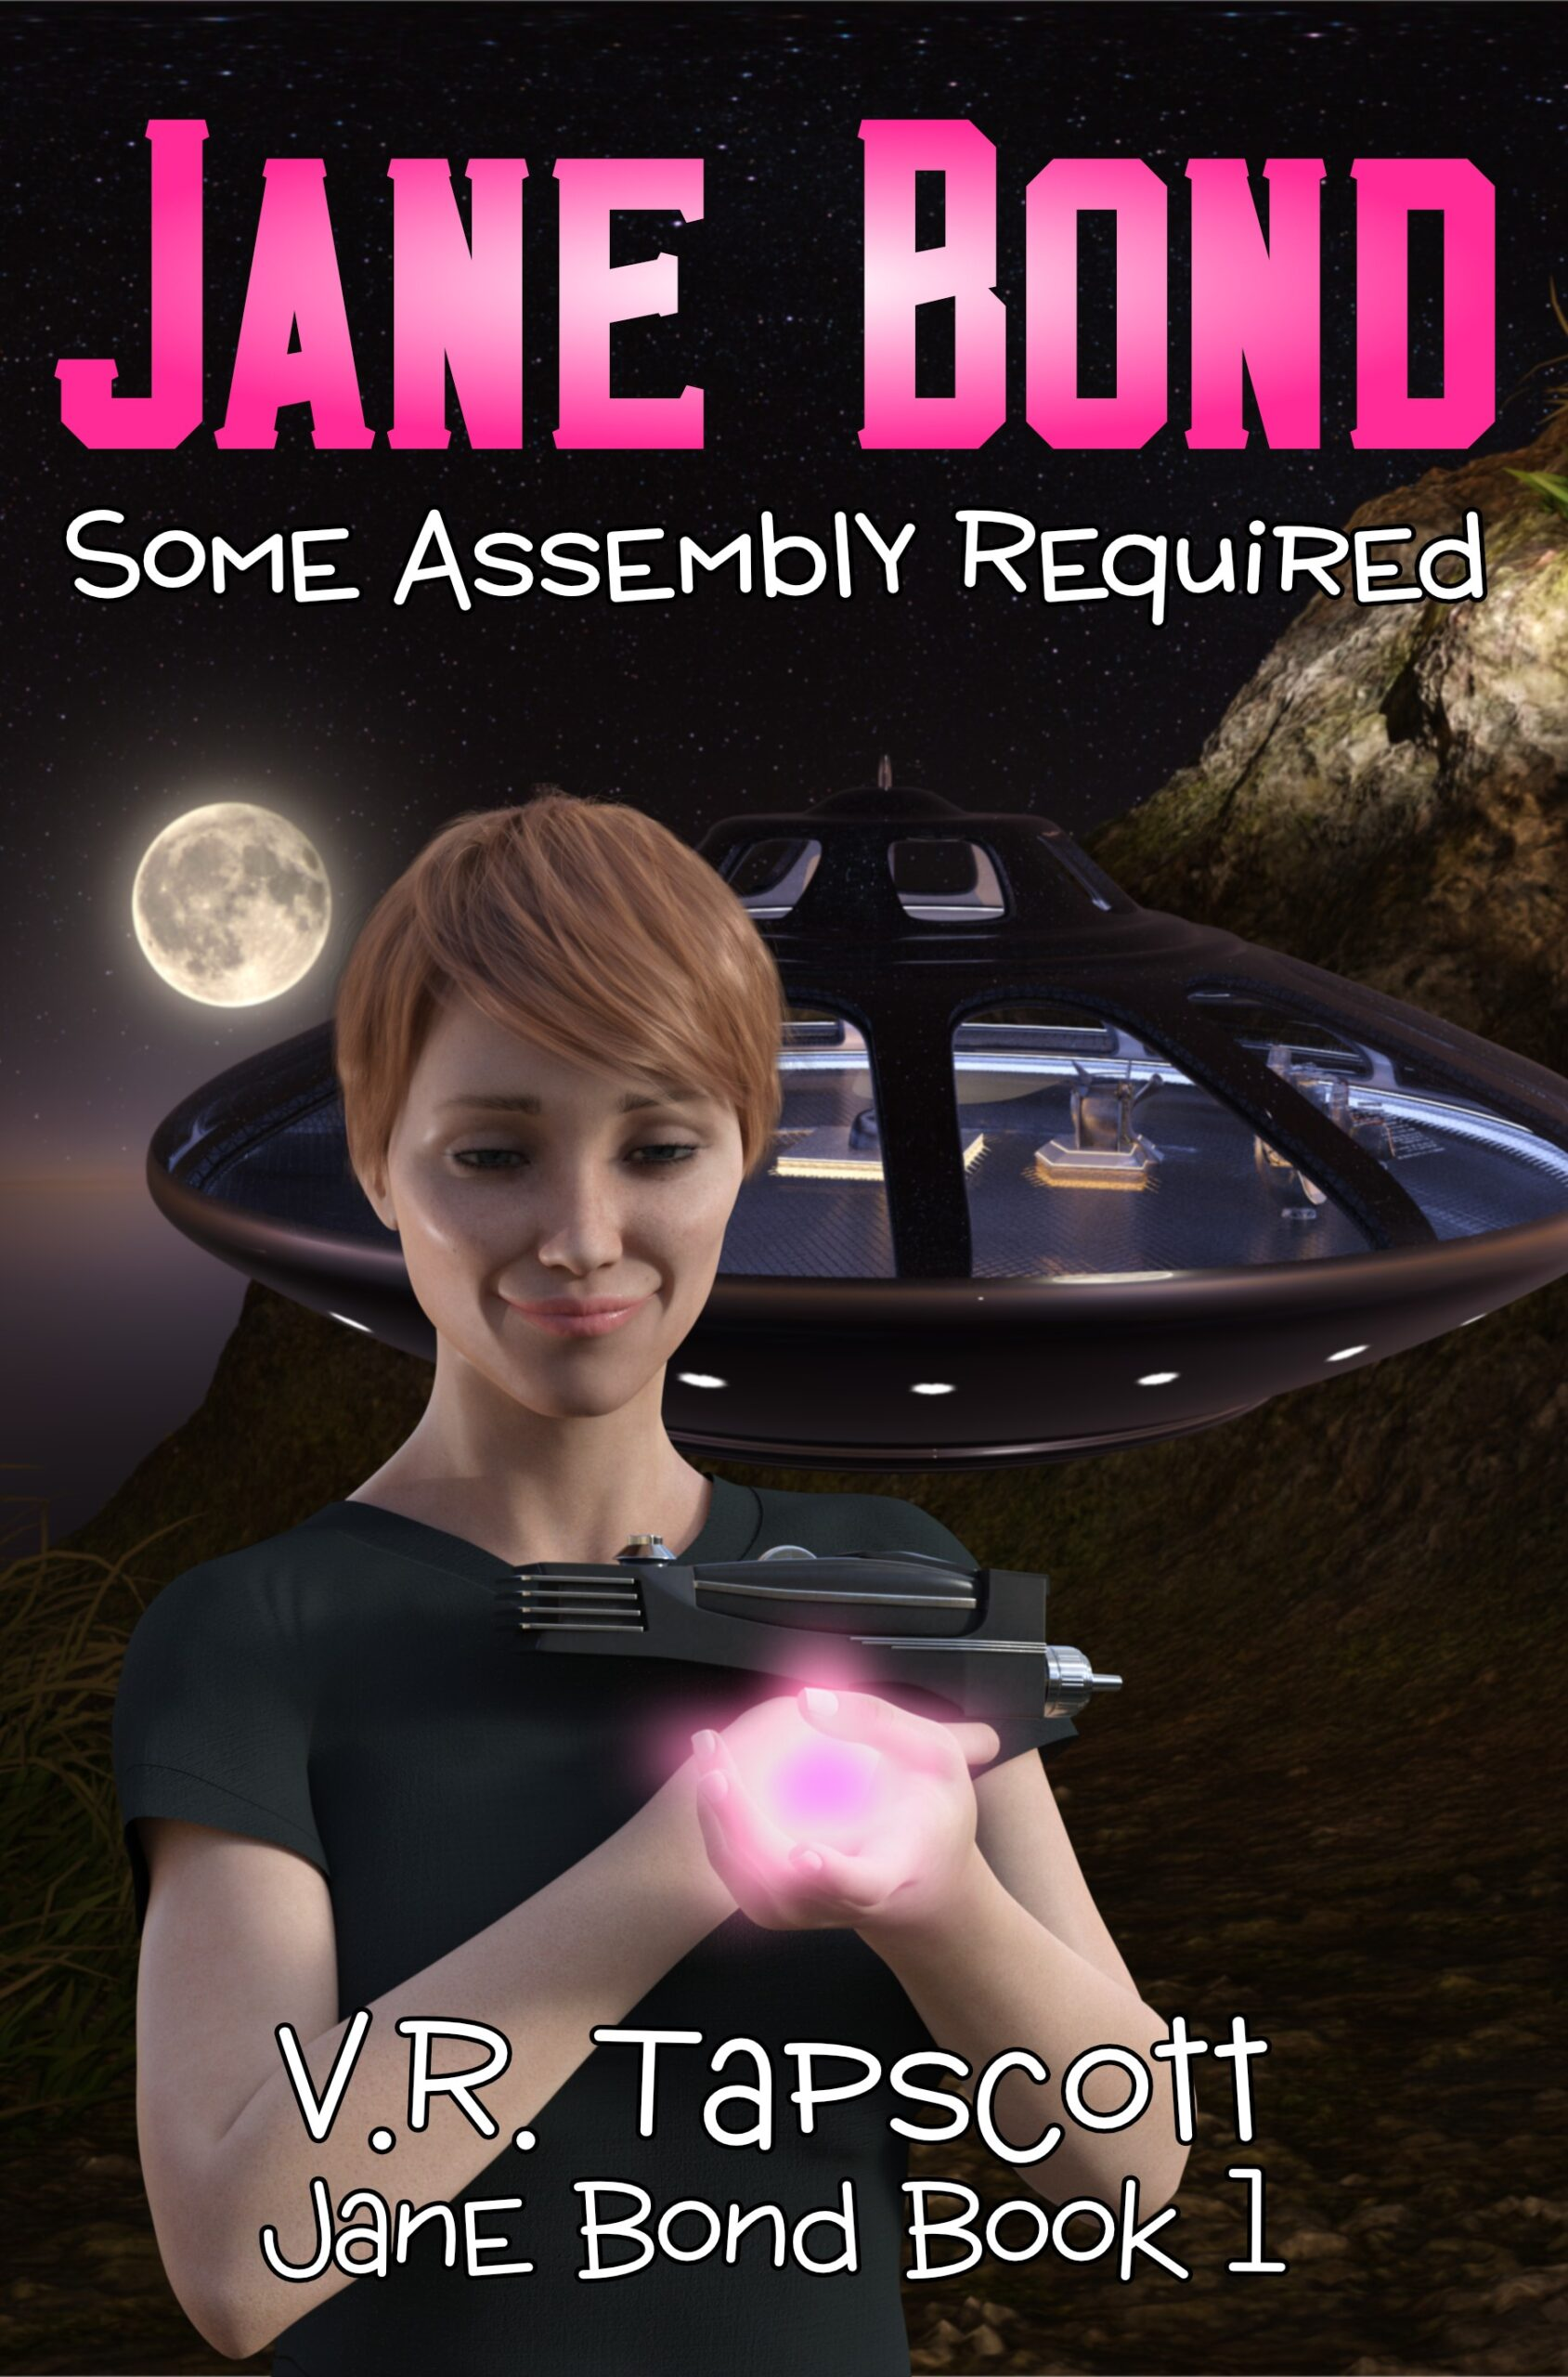 Jane Bond: Some Assembly Required